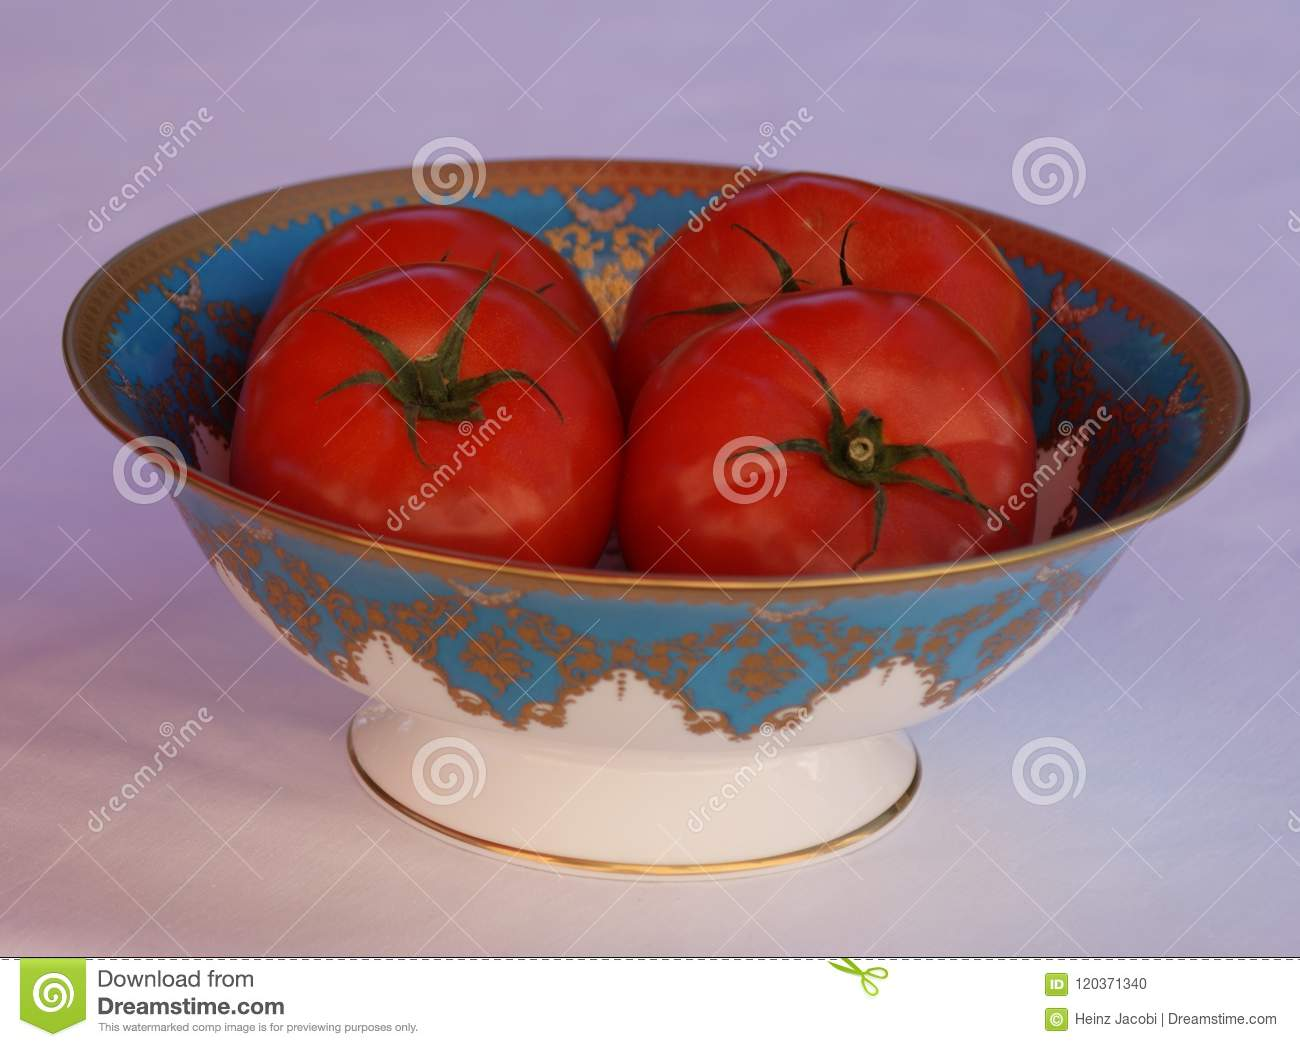 A bon china porcelain bowl filled with beef tomatoes